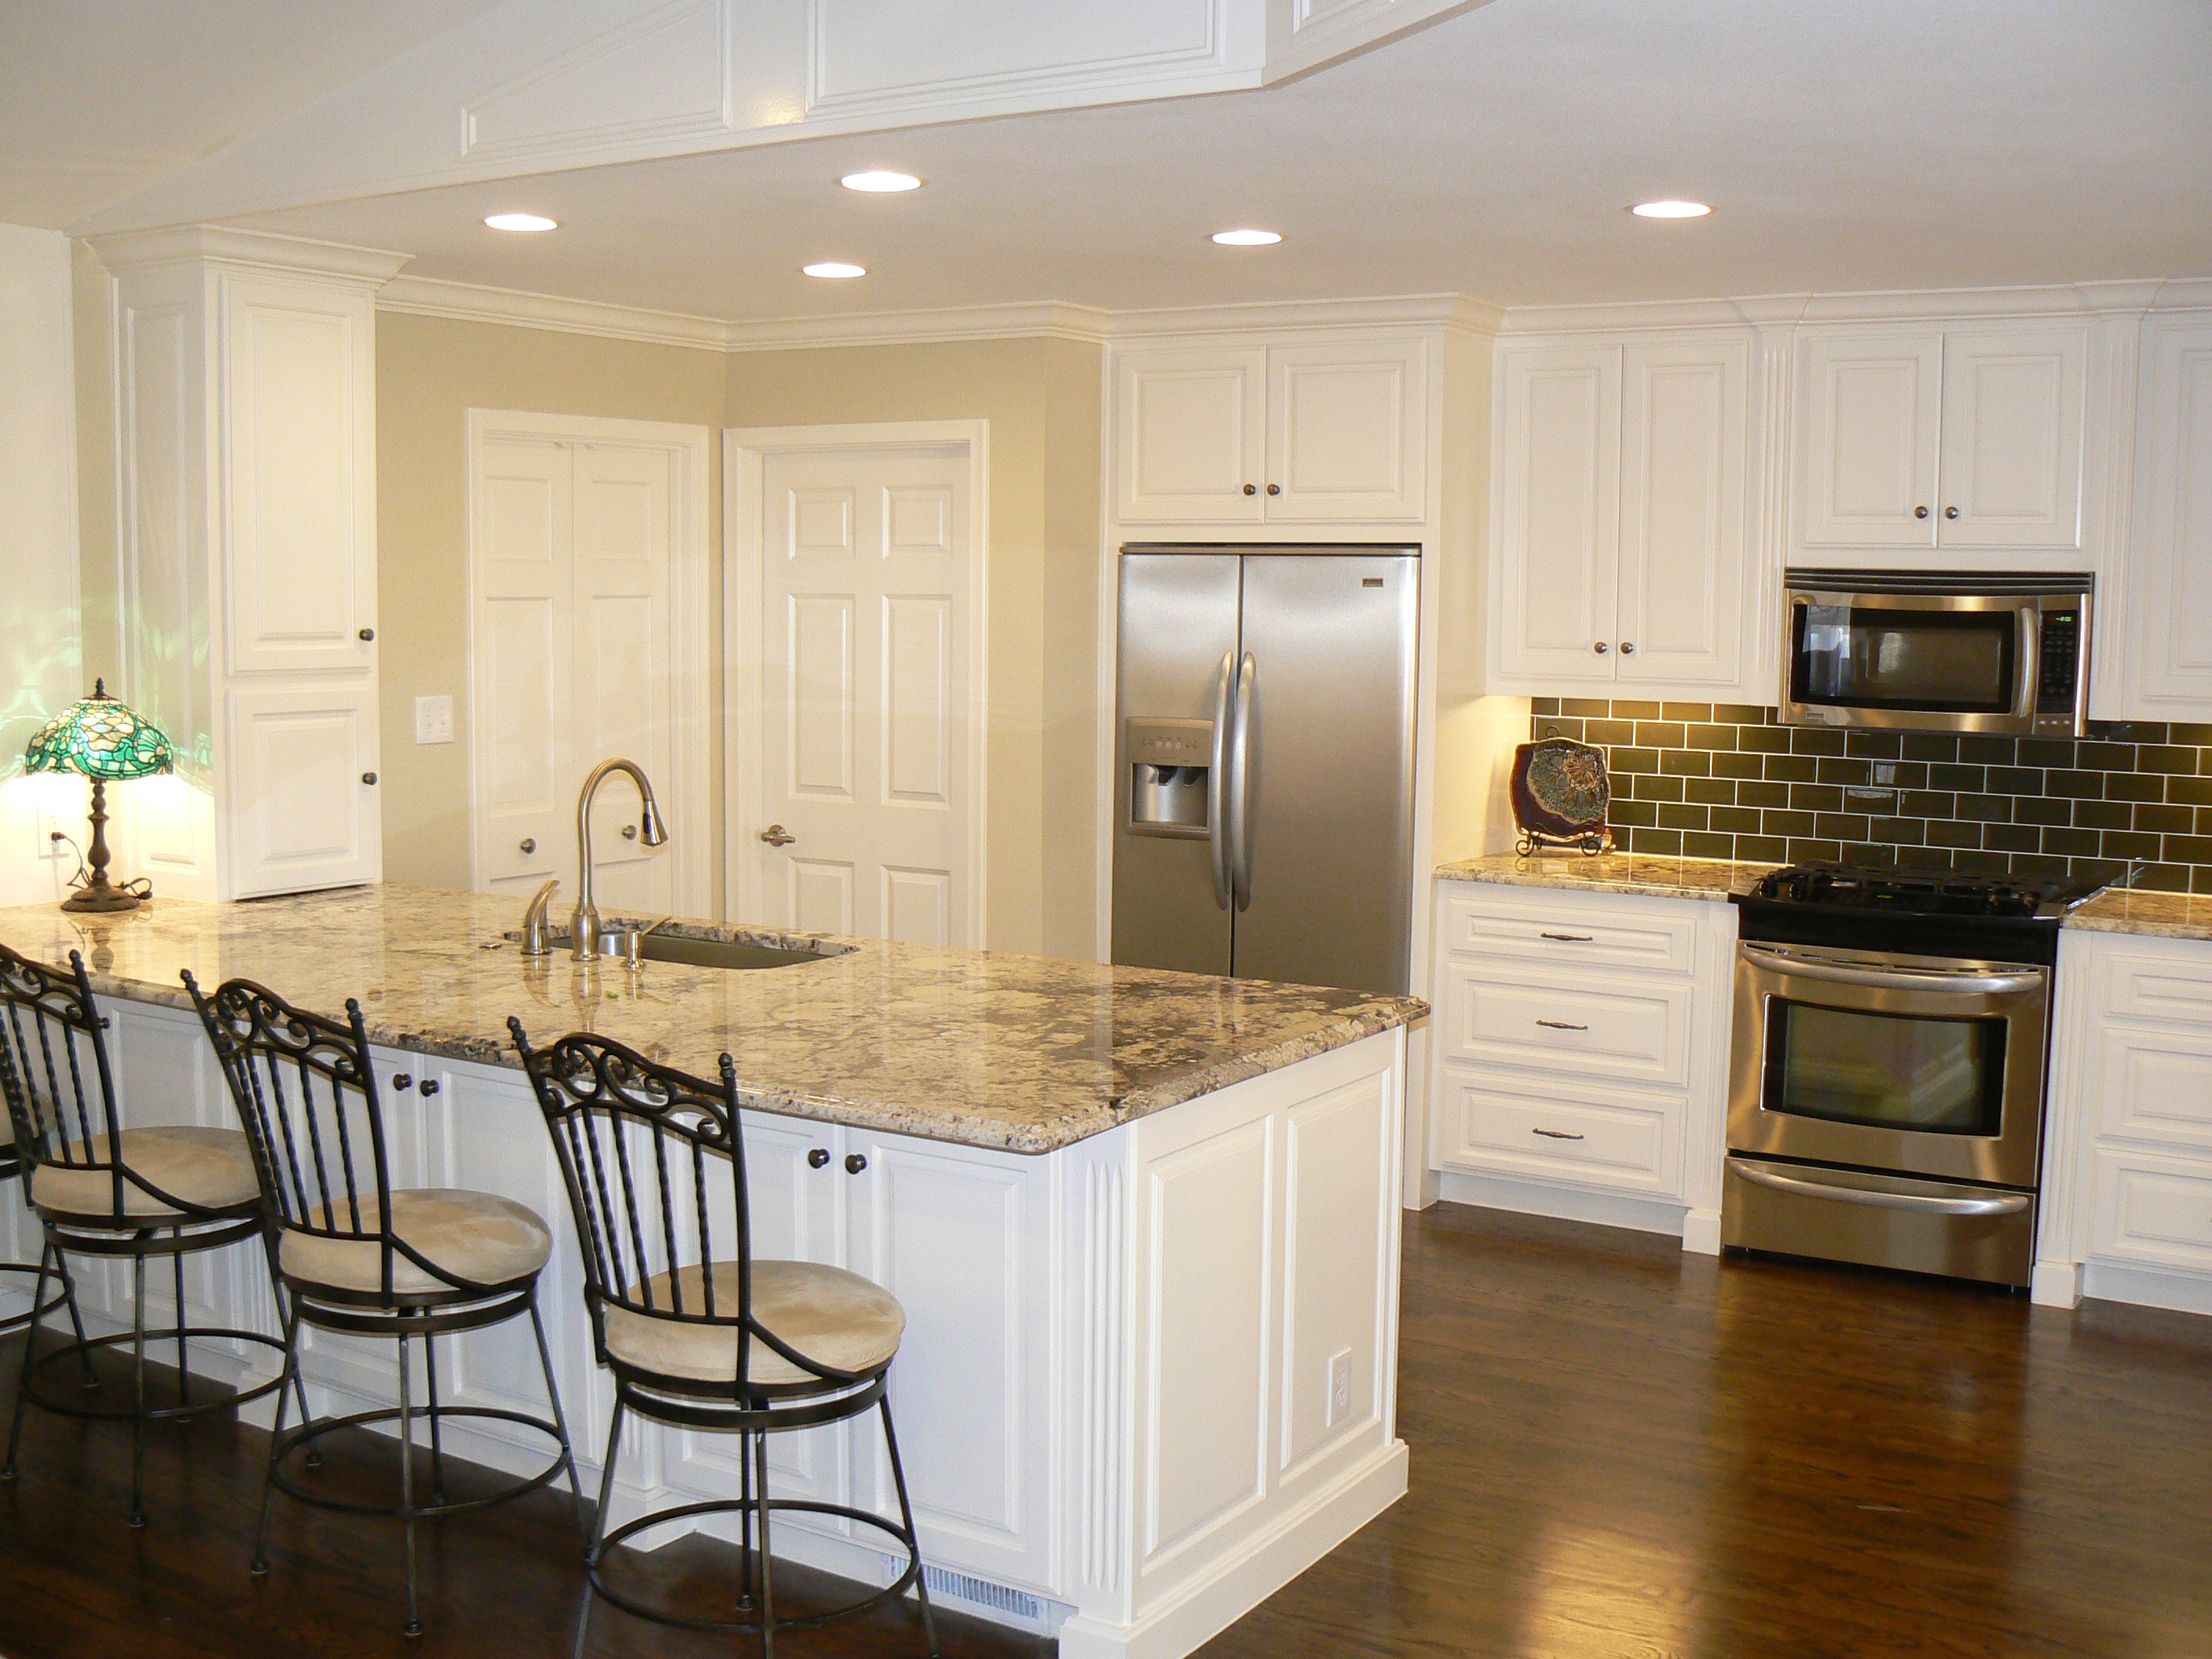 Pics of light white kitchen cabinets w hardwood floors for Floor kitchen cabinets